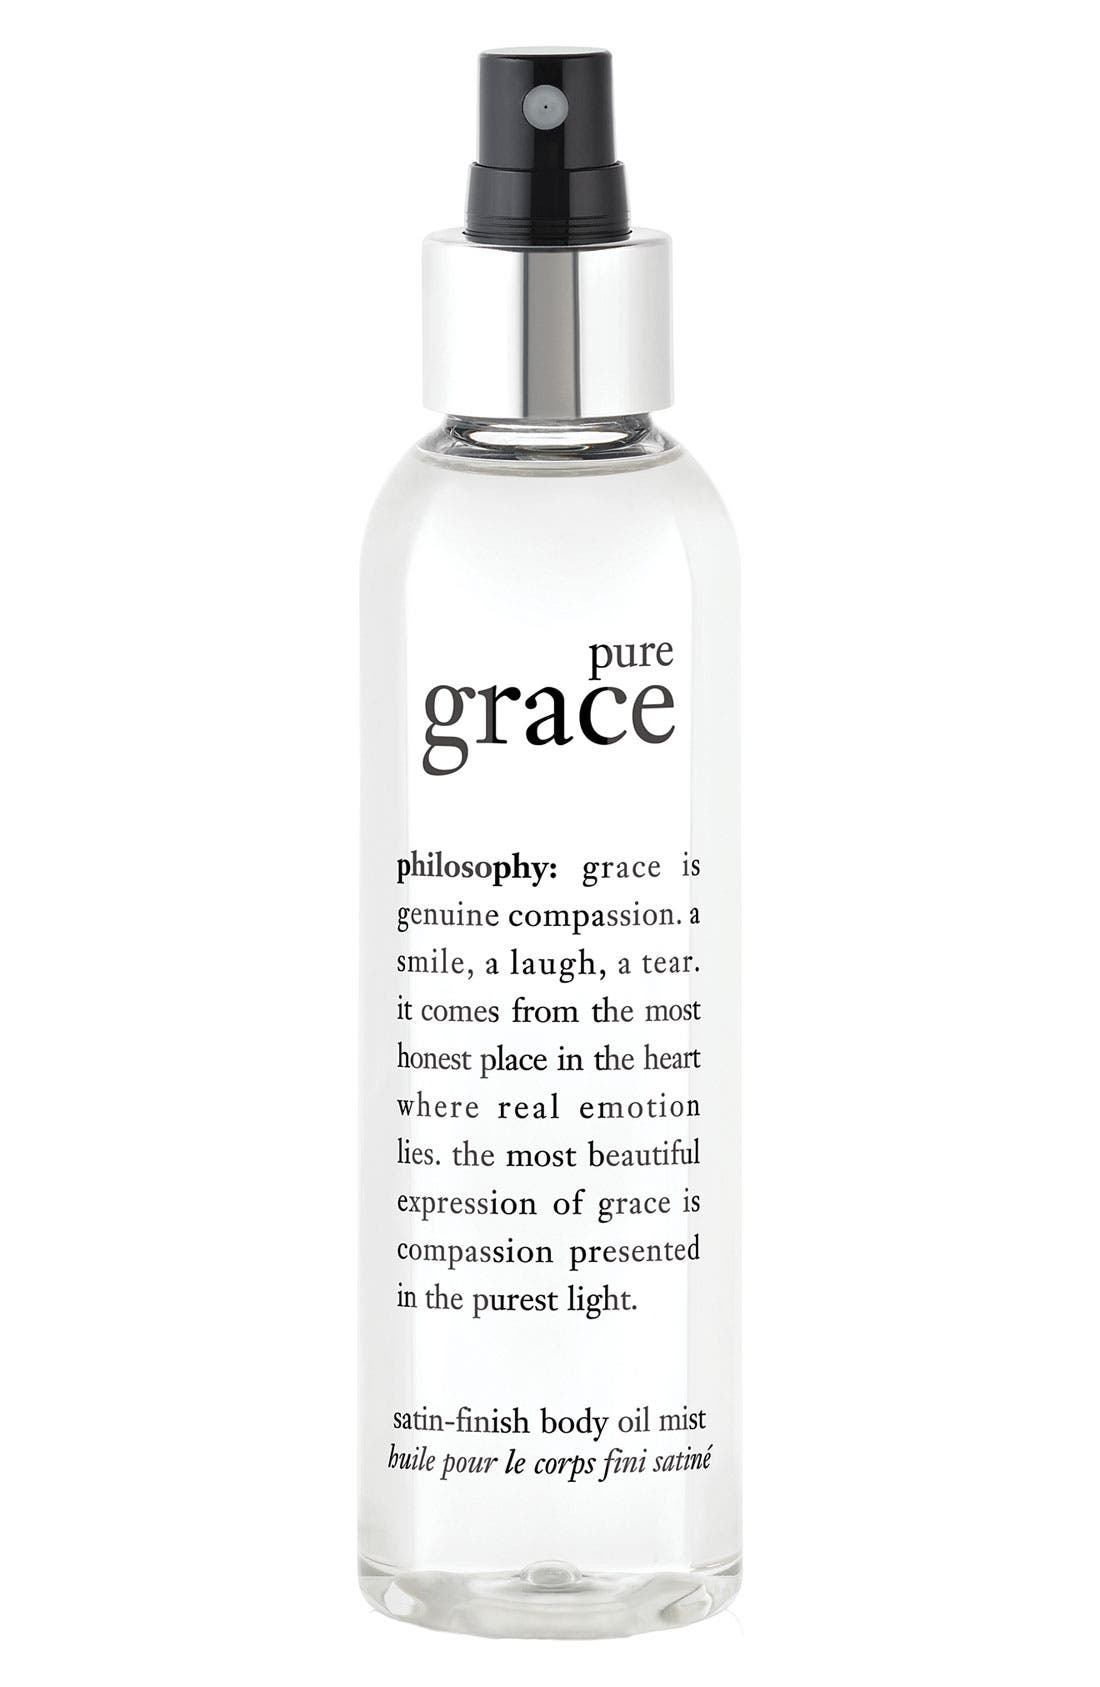 philosophy 'pure grace' satin-finish body oil mist